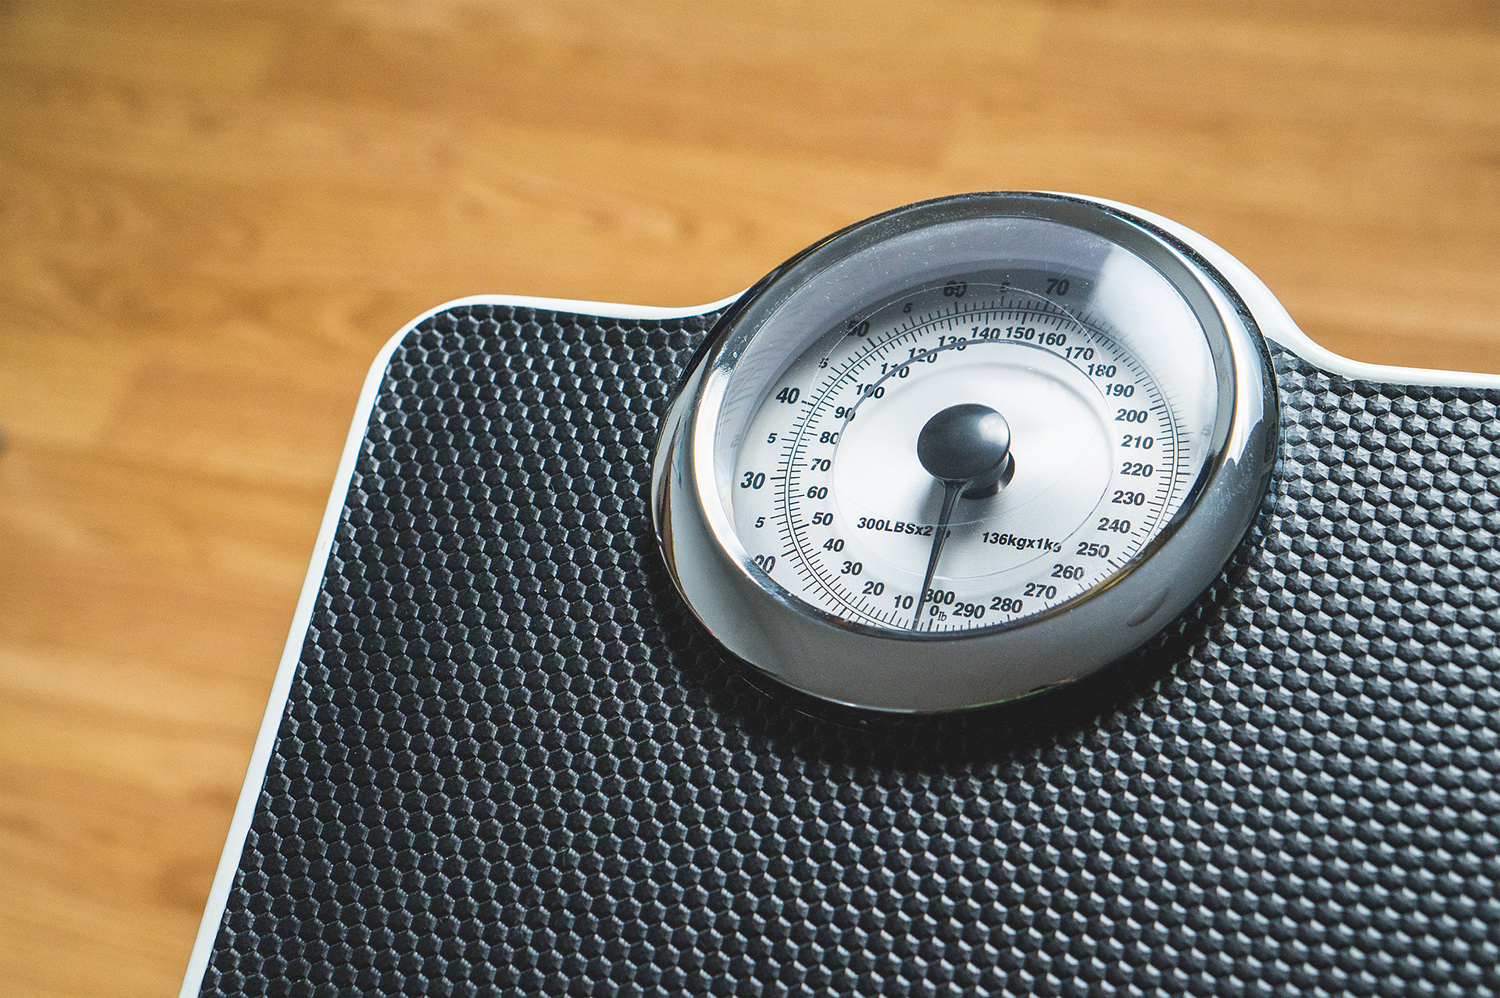 Weight Scale For Tracking Weight Loss Progress